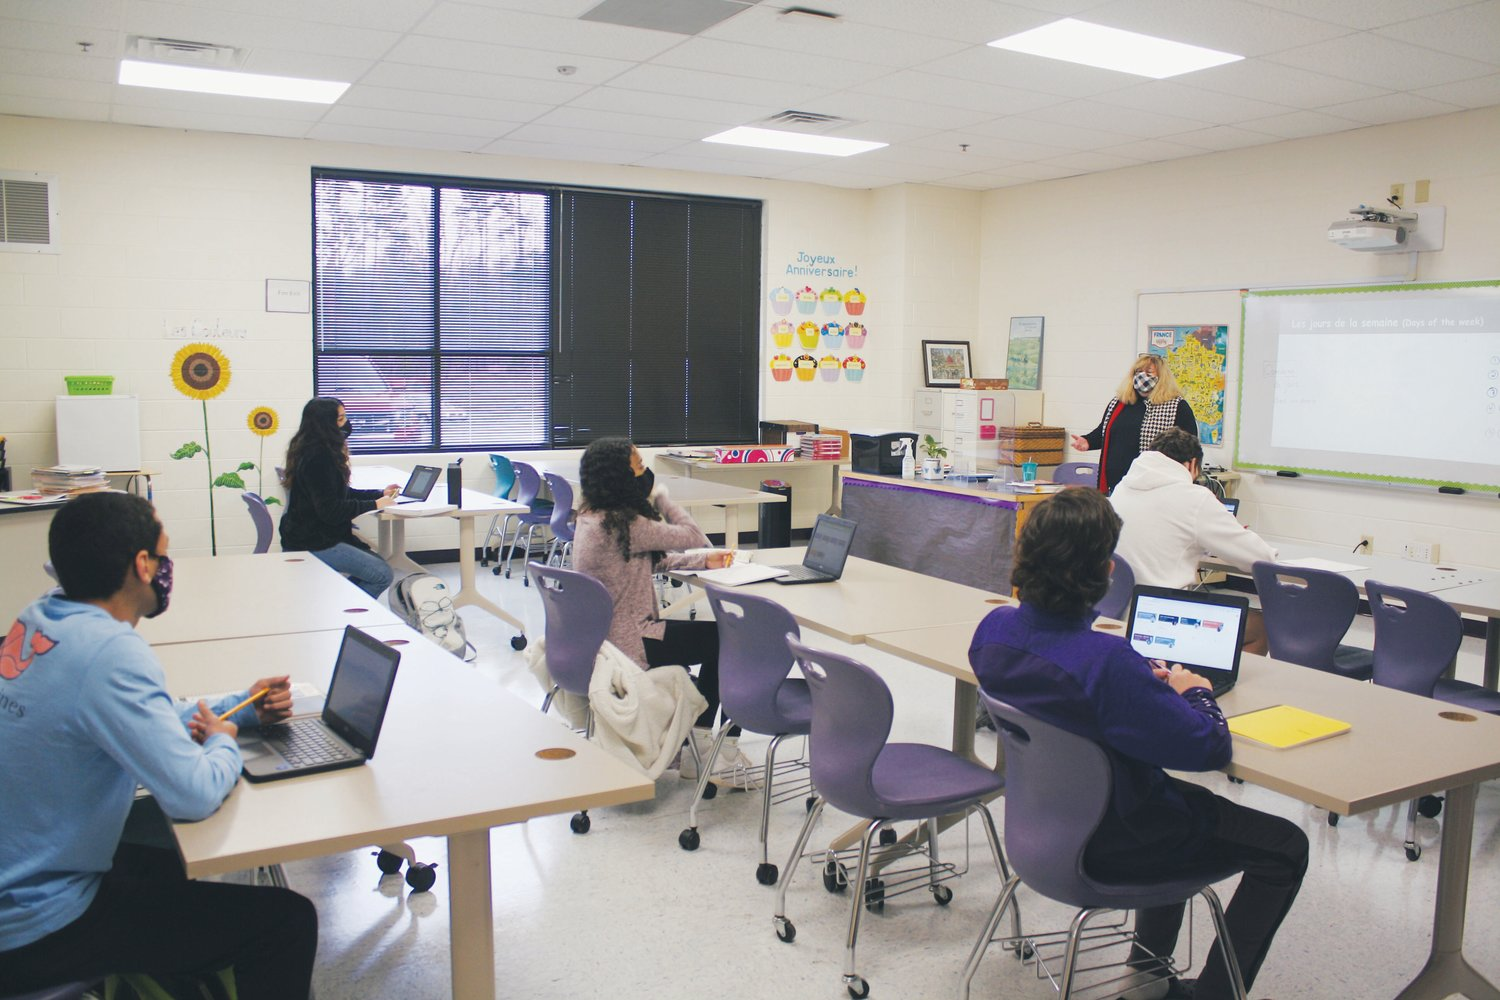 Chatham Charter high school students learning under Plan B in February. Chatham Charter is one of three currently charter schools in Chatham currently open to students.